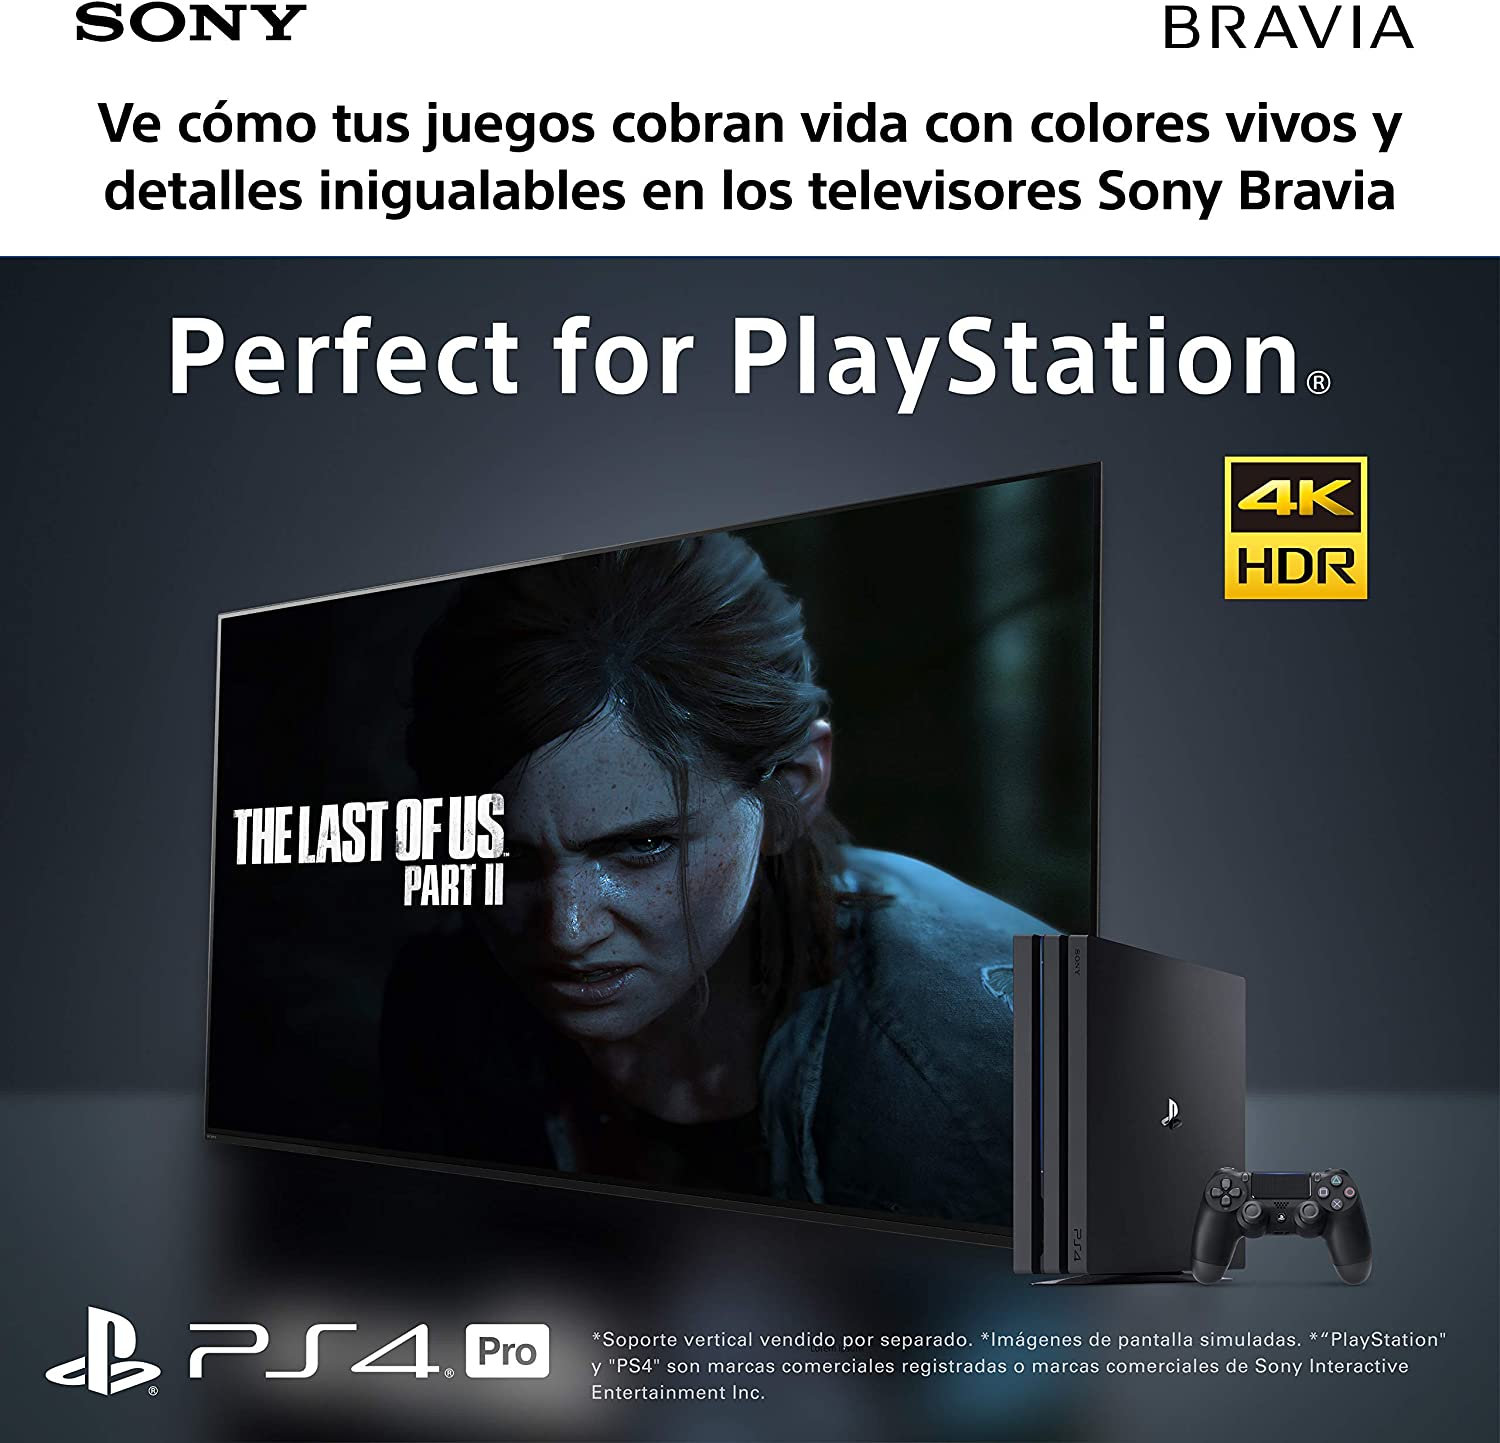 Sony KD-65XH8196PBAEP - Televisor 4K HDR Android TV (procesador X1 4K HDR, Triluminos, 4K X-Reality PRO, MotionFlow XR, X-Balanced Speaker, Dolby Vision, Dolby Atmos, mando con control por voz): Amazon.es: Electrónica